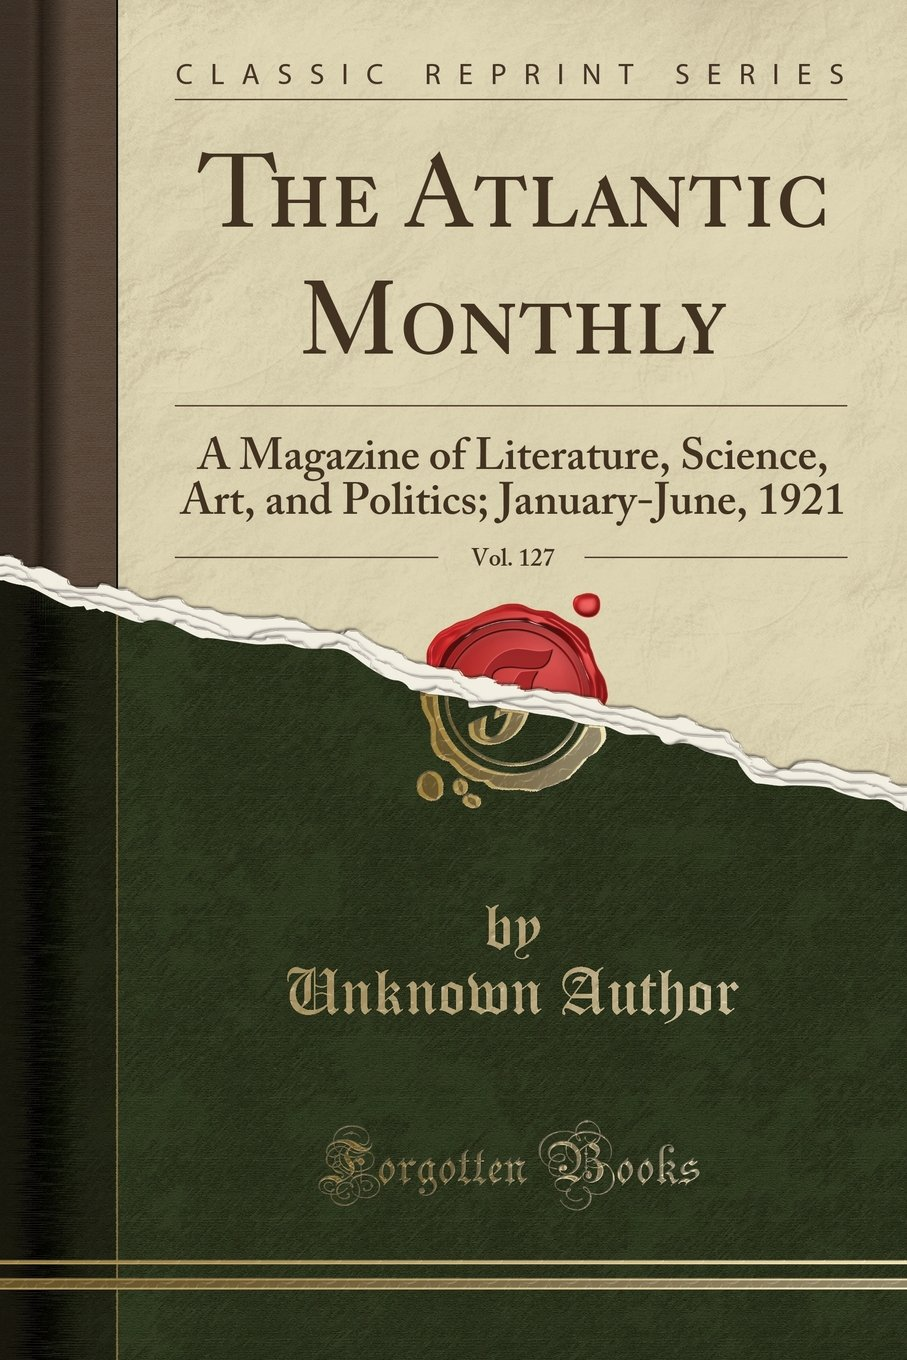 Read Online The Atlantic Monthly, Vol. 127: A Magazine of Literature, Science, Art, and Politics; January-June, 1921 (Classic Reprint) PDF